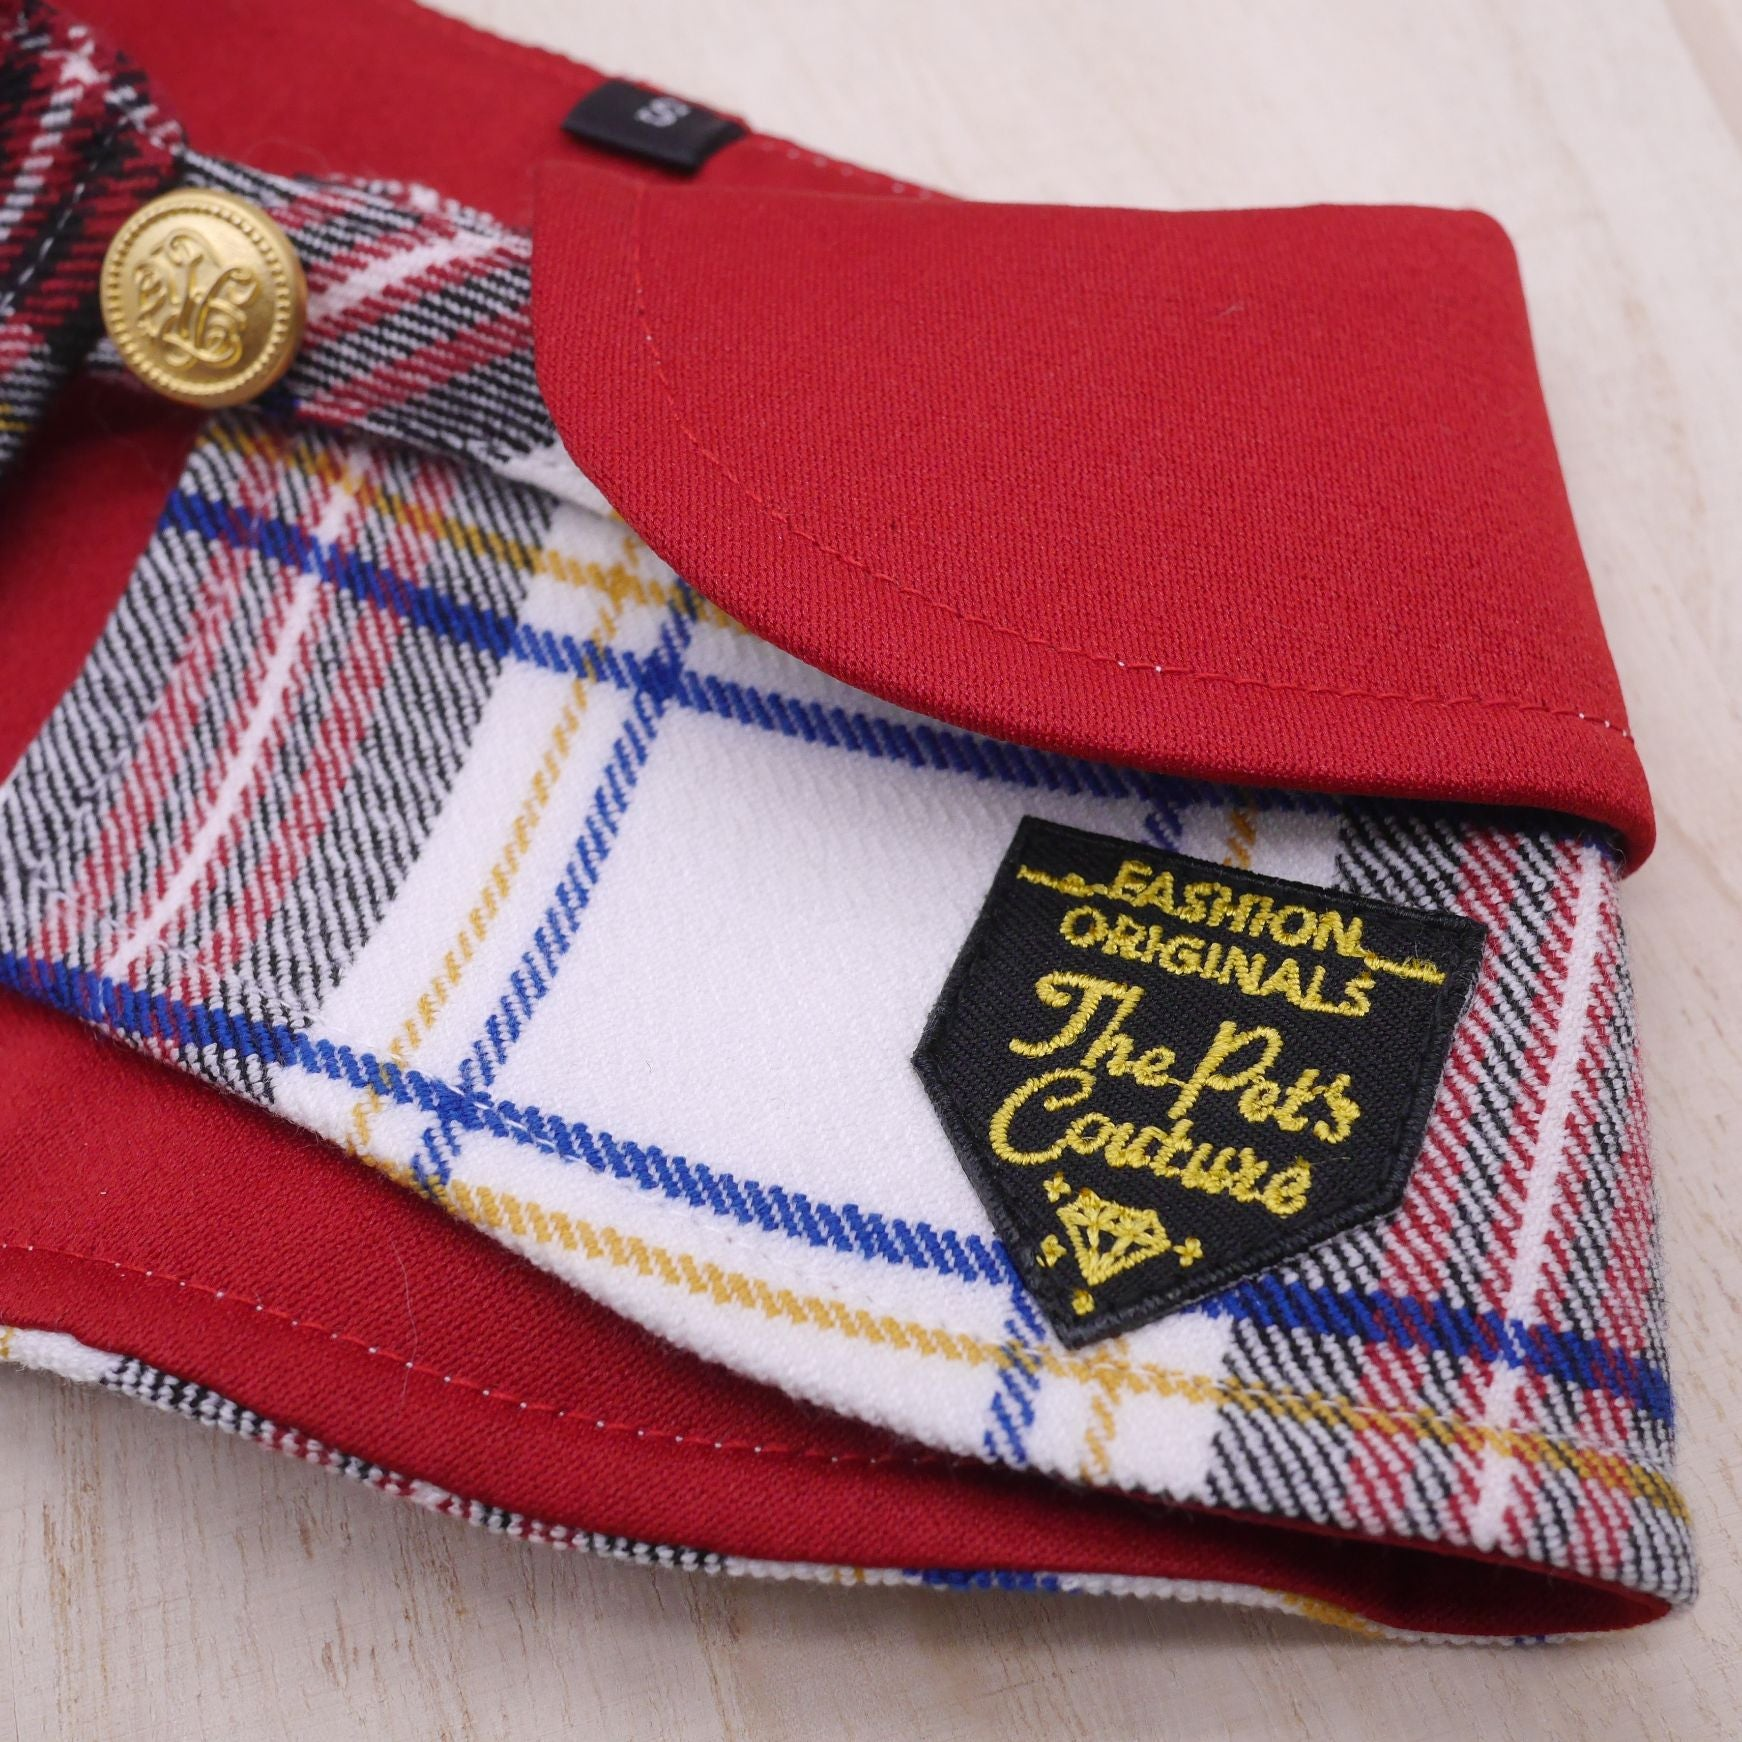 Capes - Imperial Collar with Cream Tartan Print - The Pet's Couture